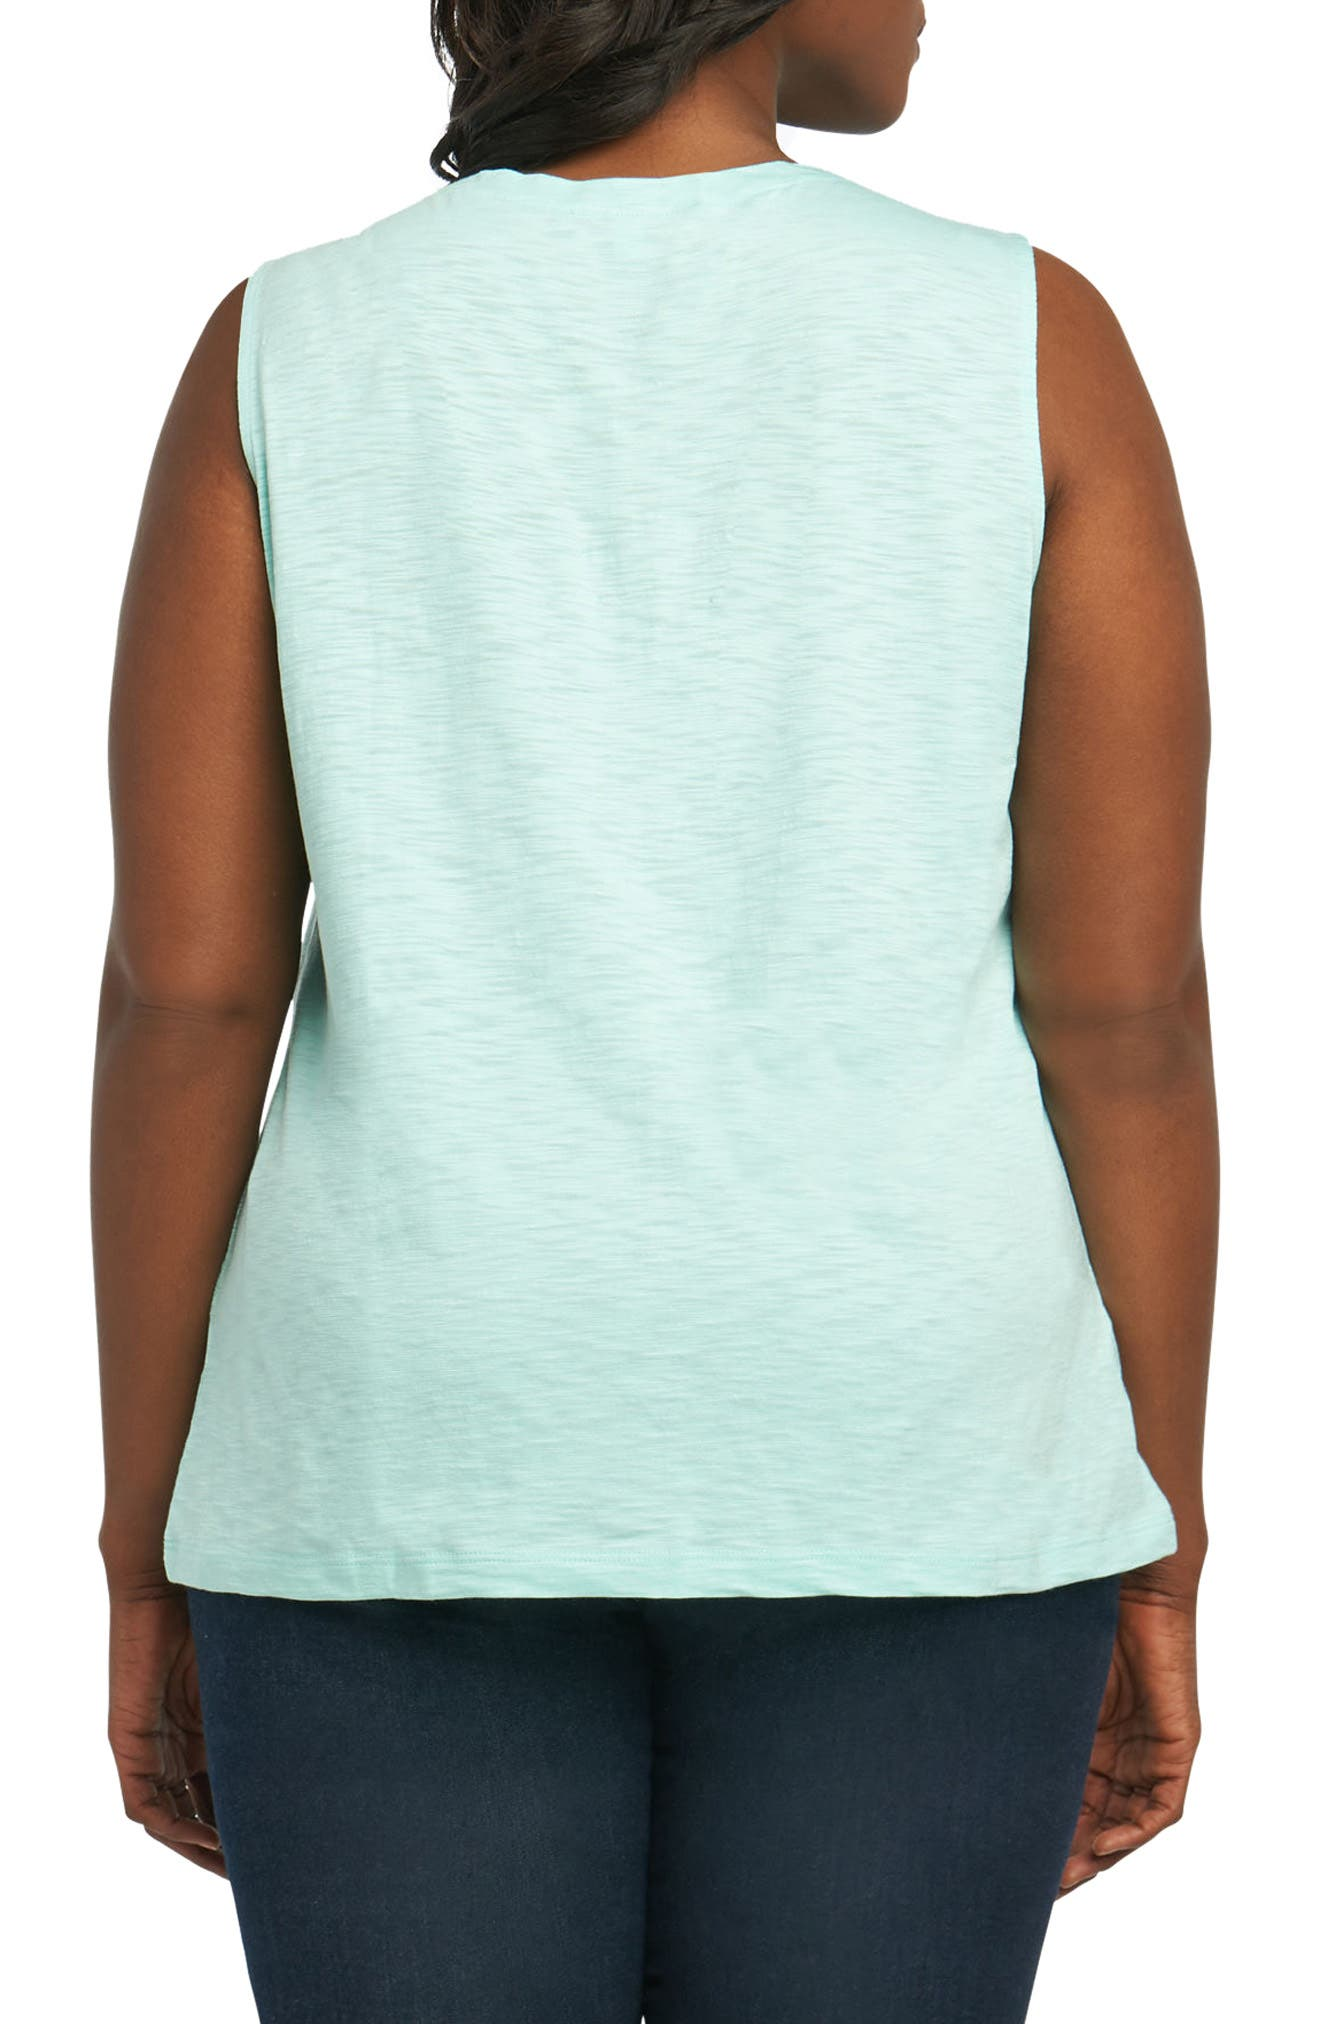 Melia Cotton Blend Tank Top,                             Alternate thumbnail 2, color,                             Sea Glass